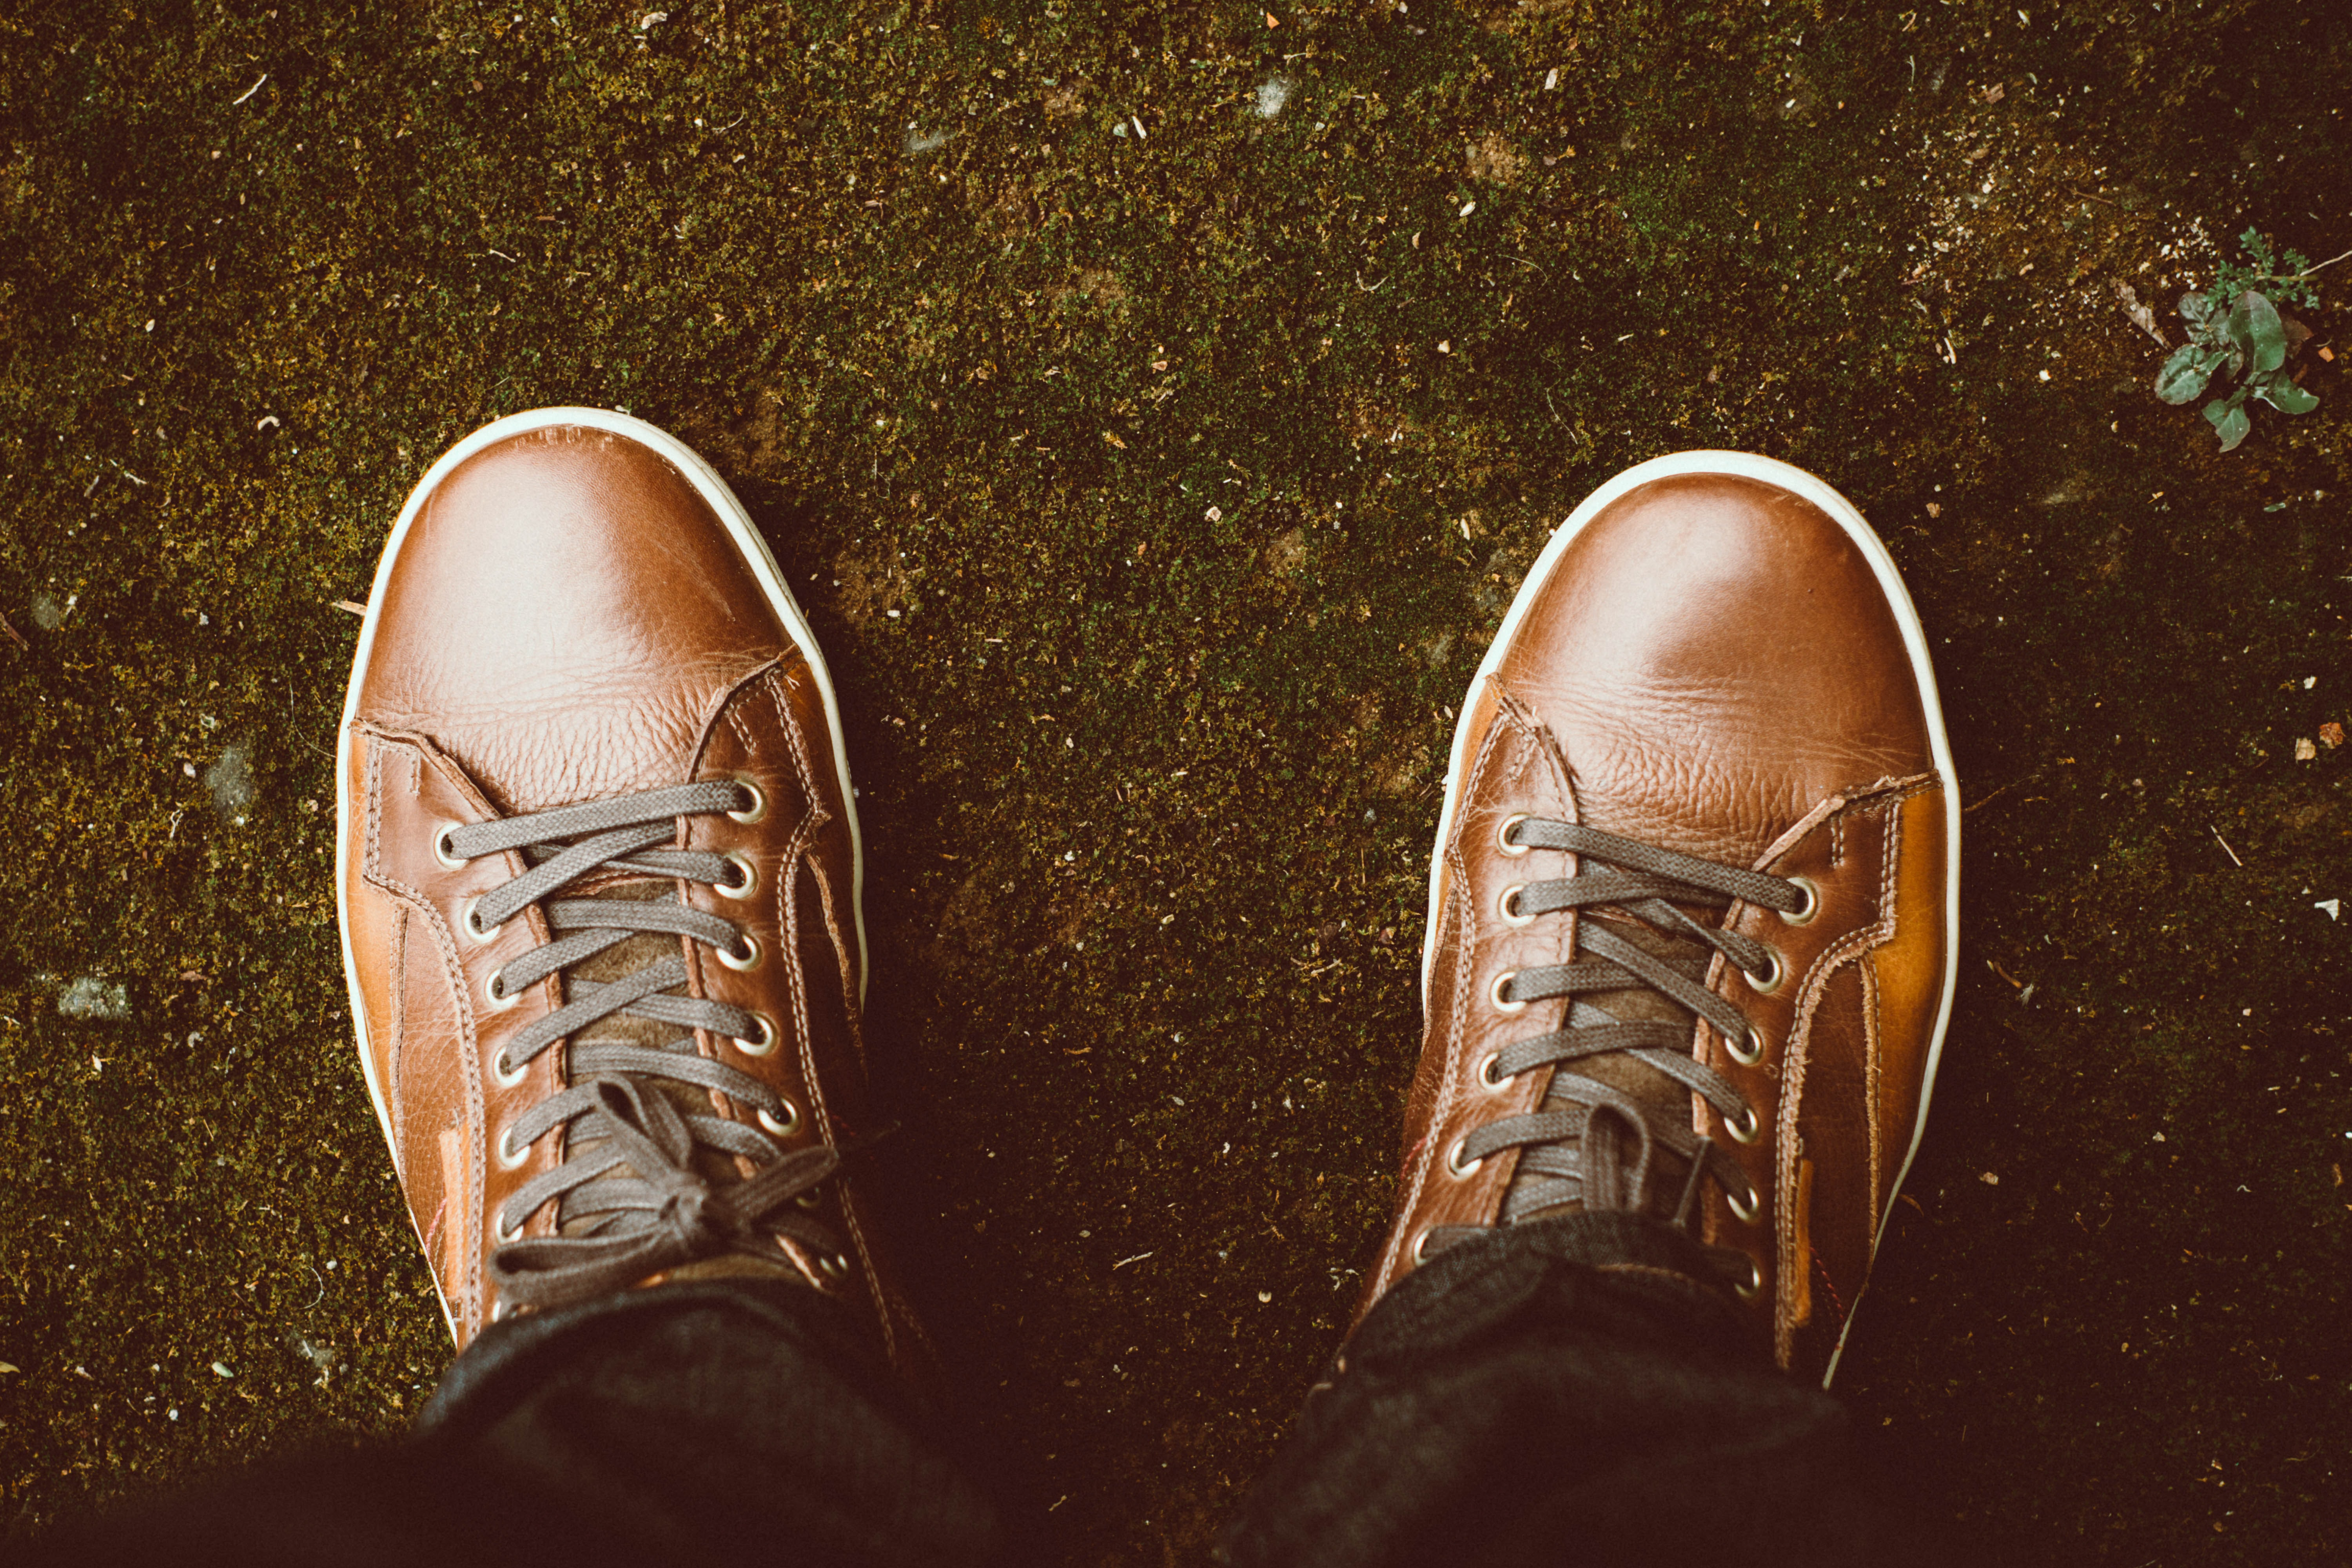 View from a man looking down at his brown shoes with laces